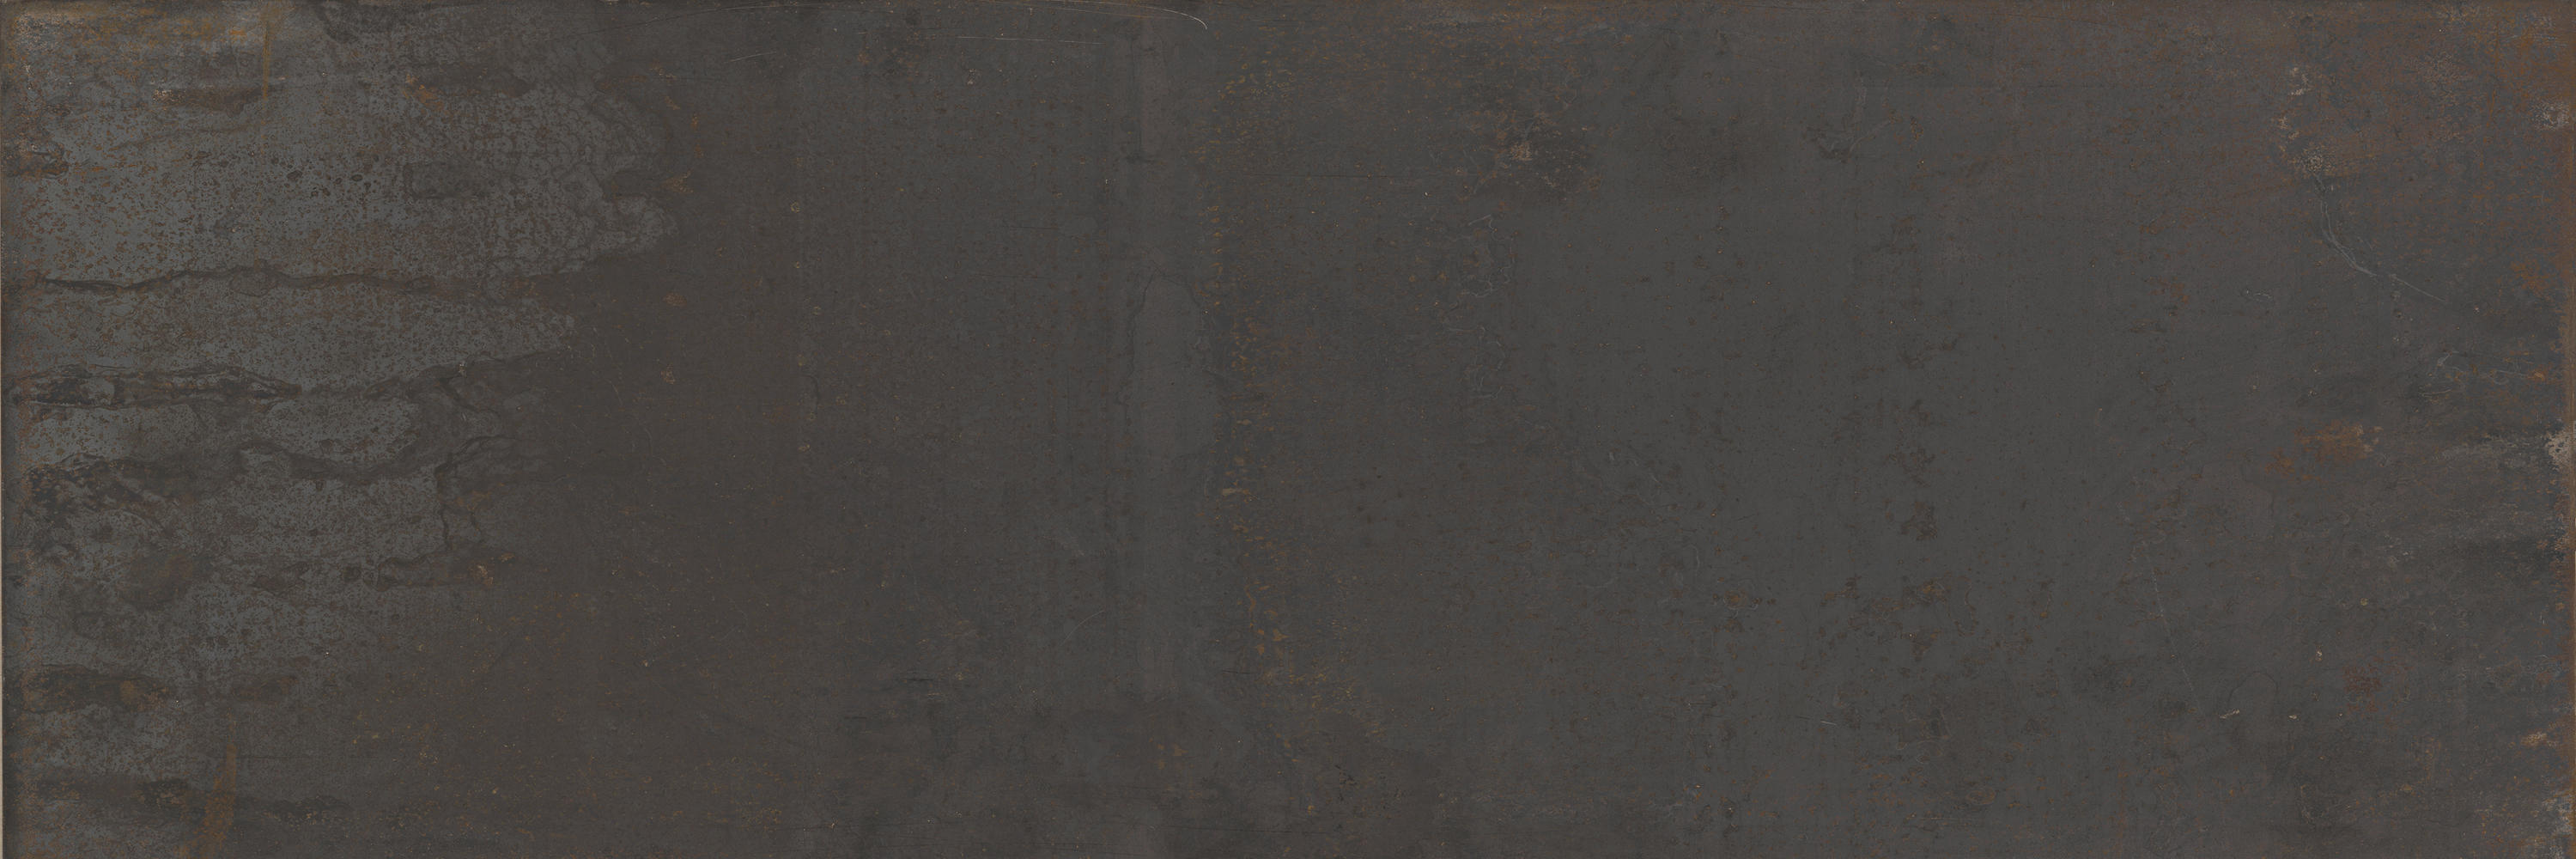 Metal Iron Ceramic Tiles From Cotto D Este Architonic